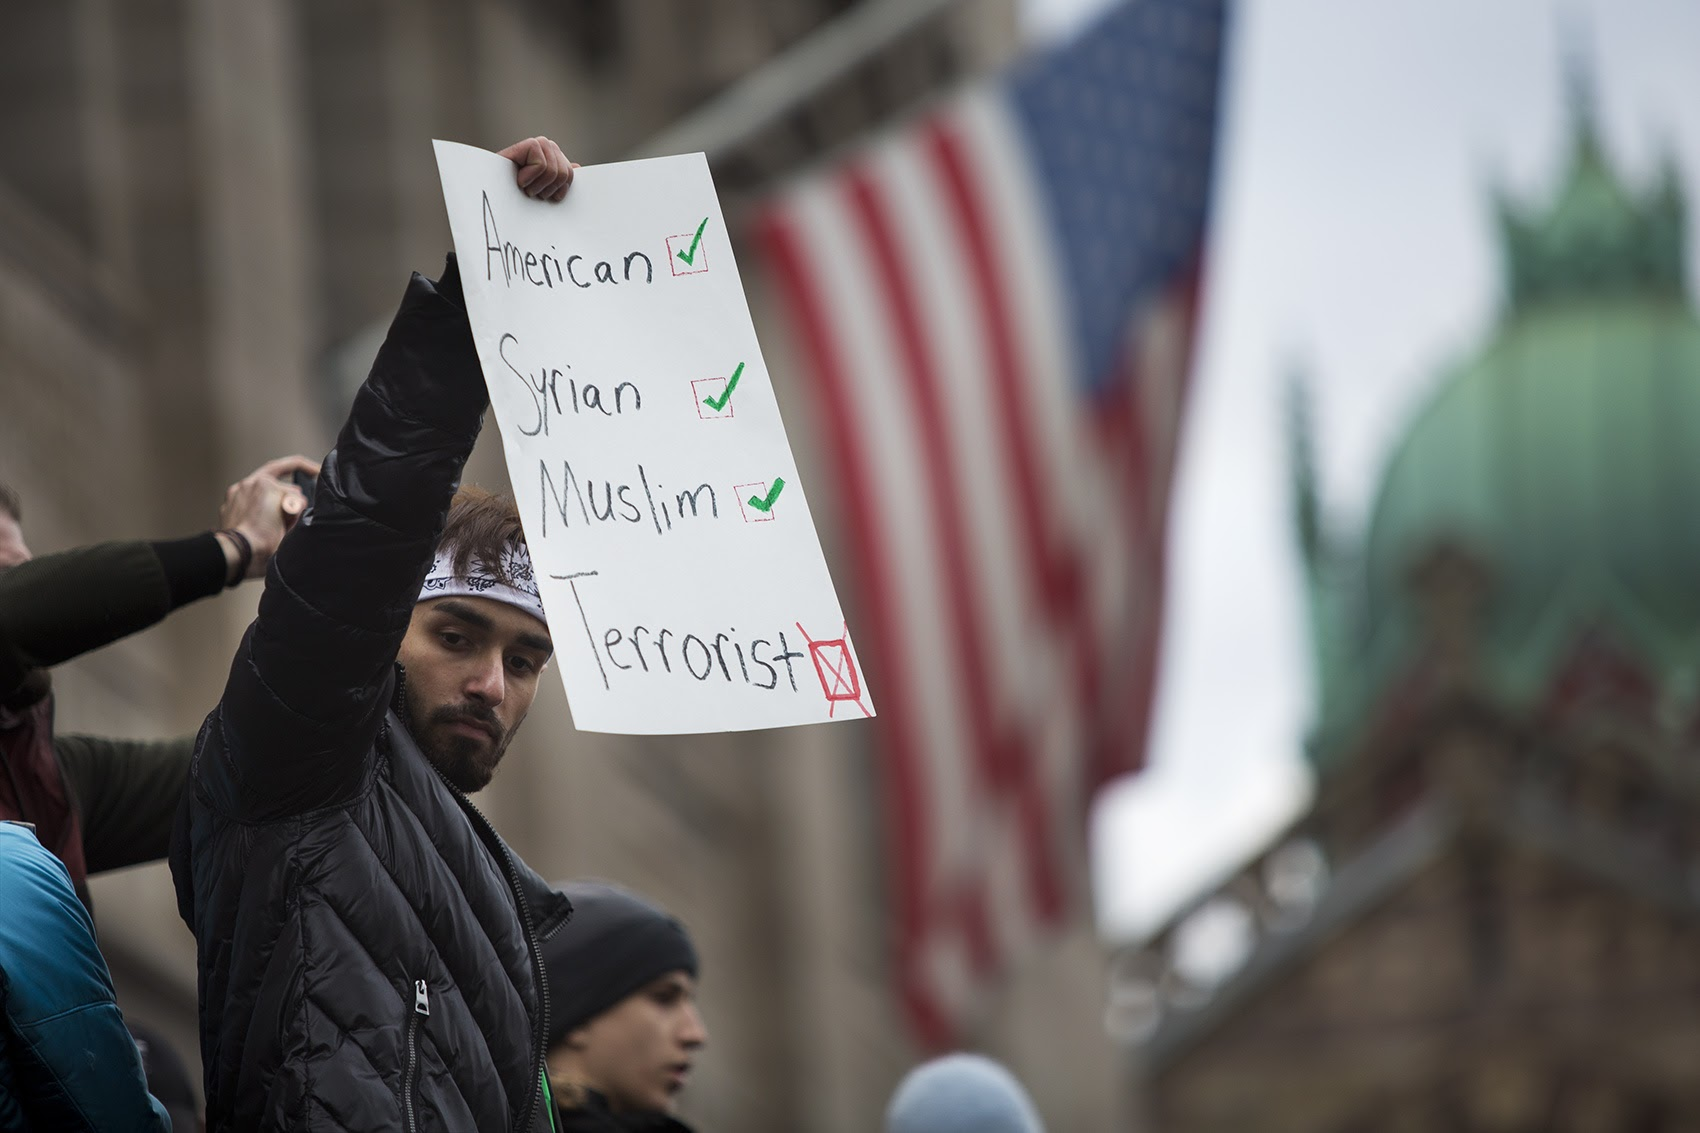 A demonstrator held a sign in front of the Boston Public Library Sunday. (Jesse Costa/WBUR)